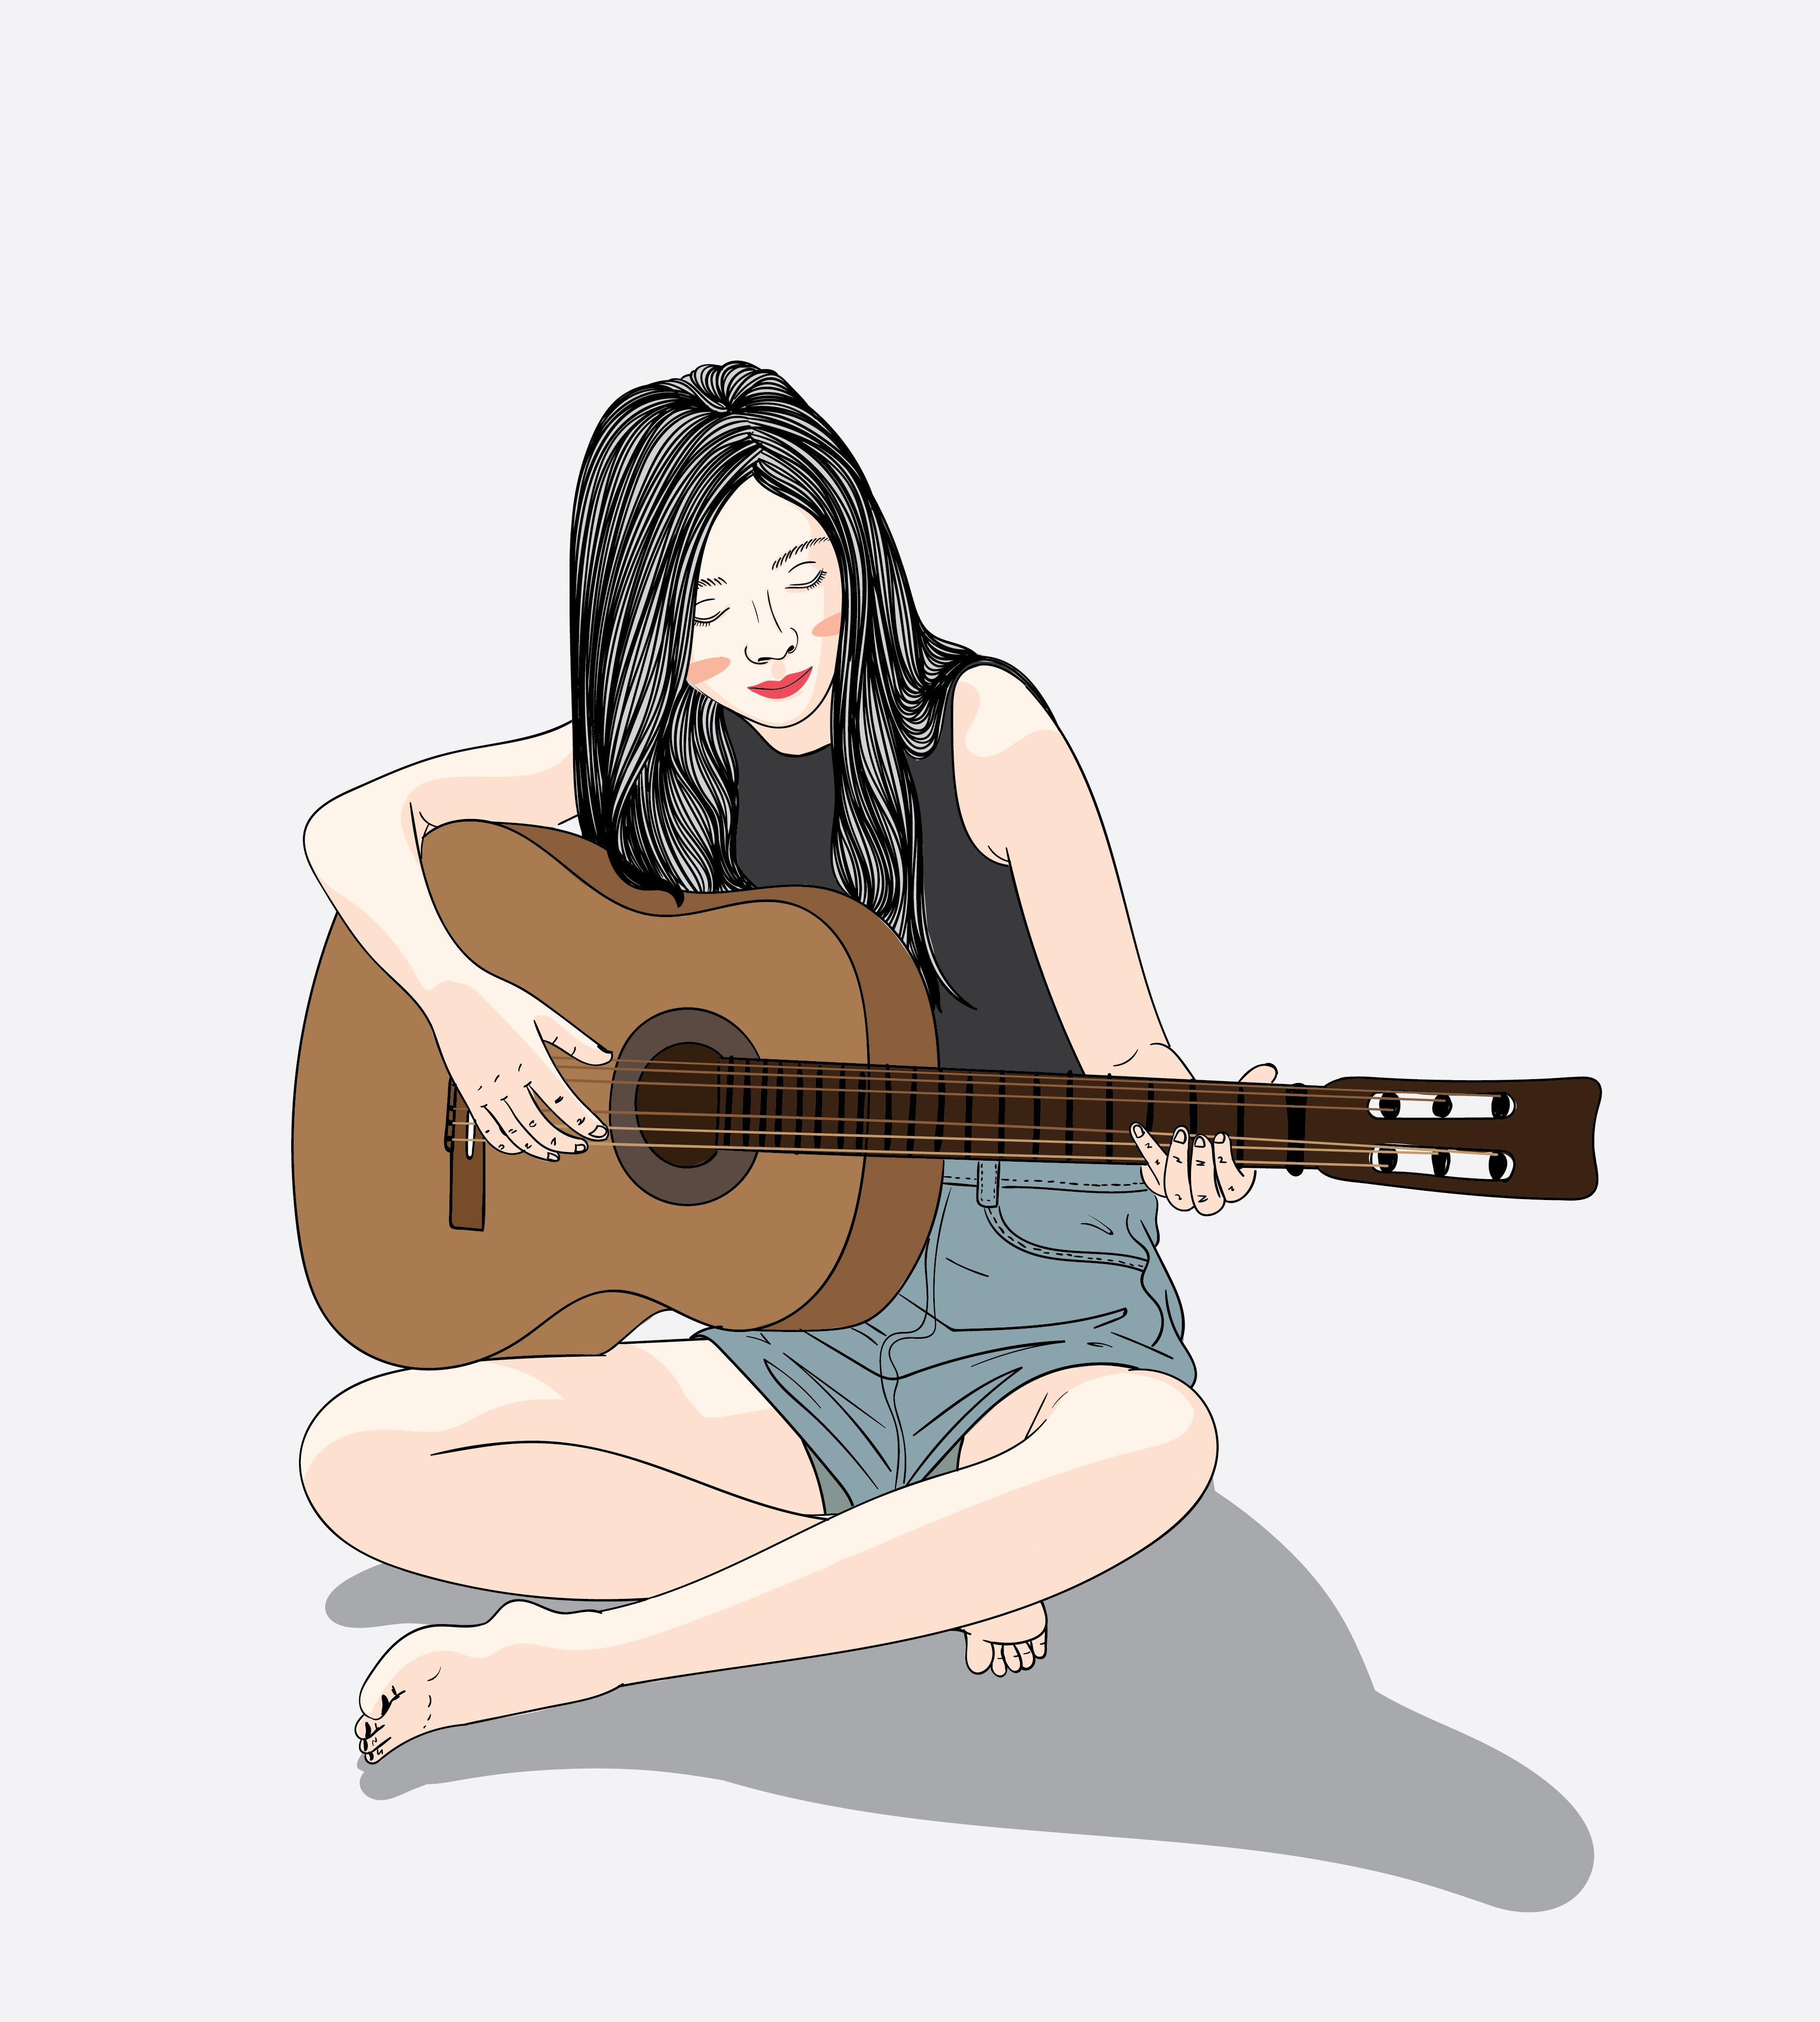 Woman Who Plays The Guitar On Vacation In 2020 Girls Cartoon Art Illustration Art Girl Girly Art